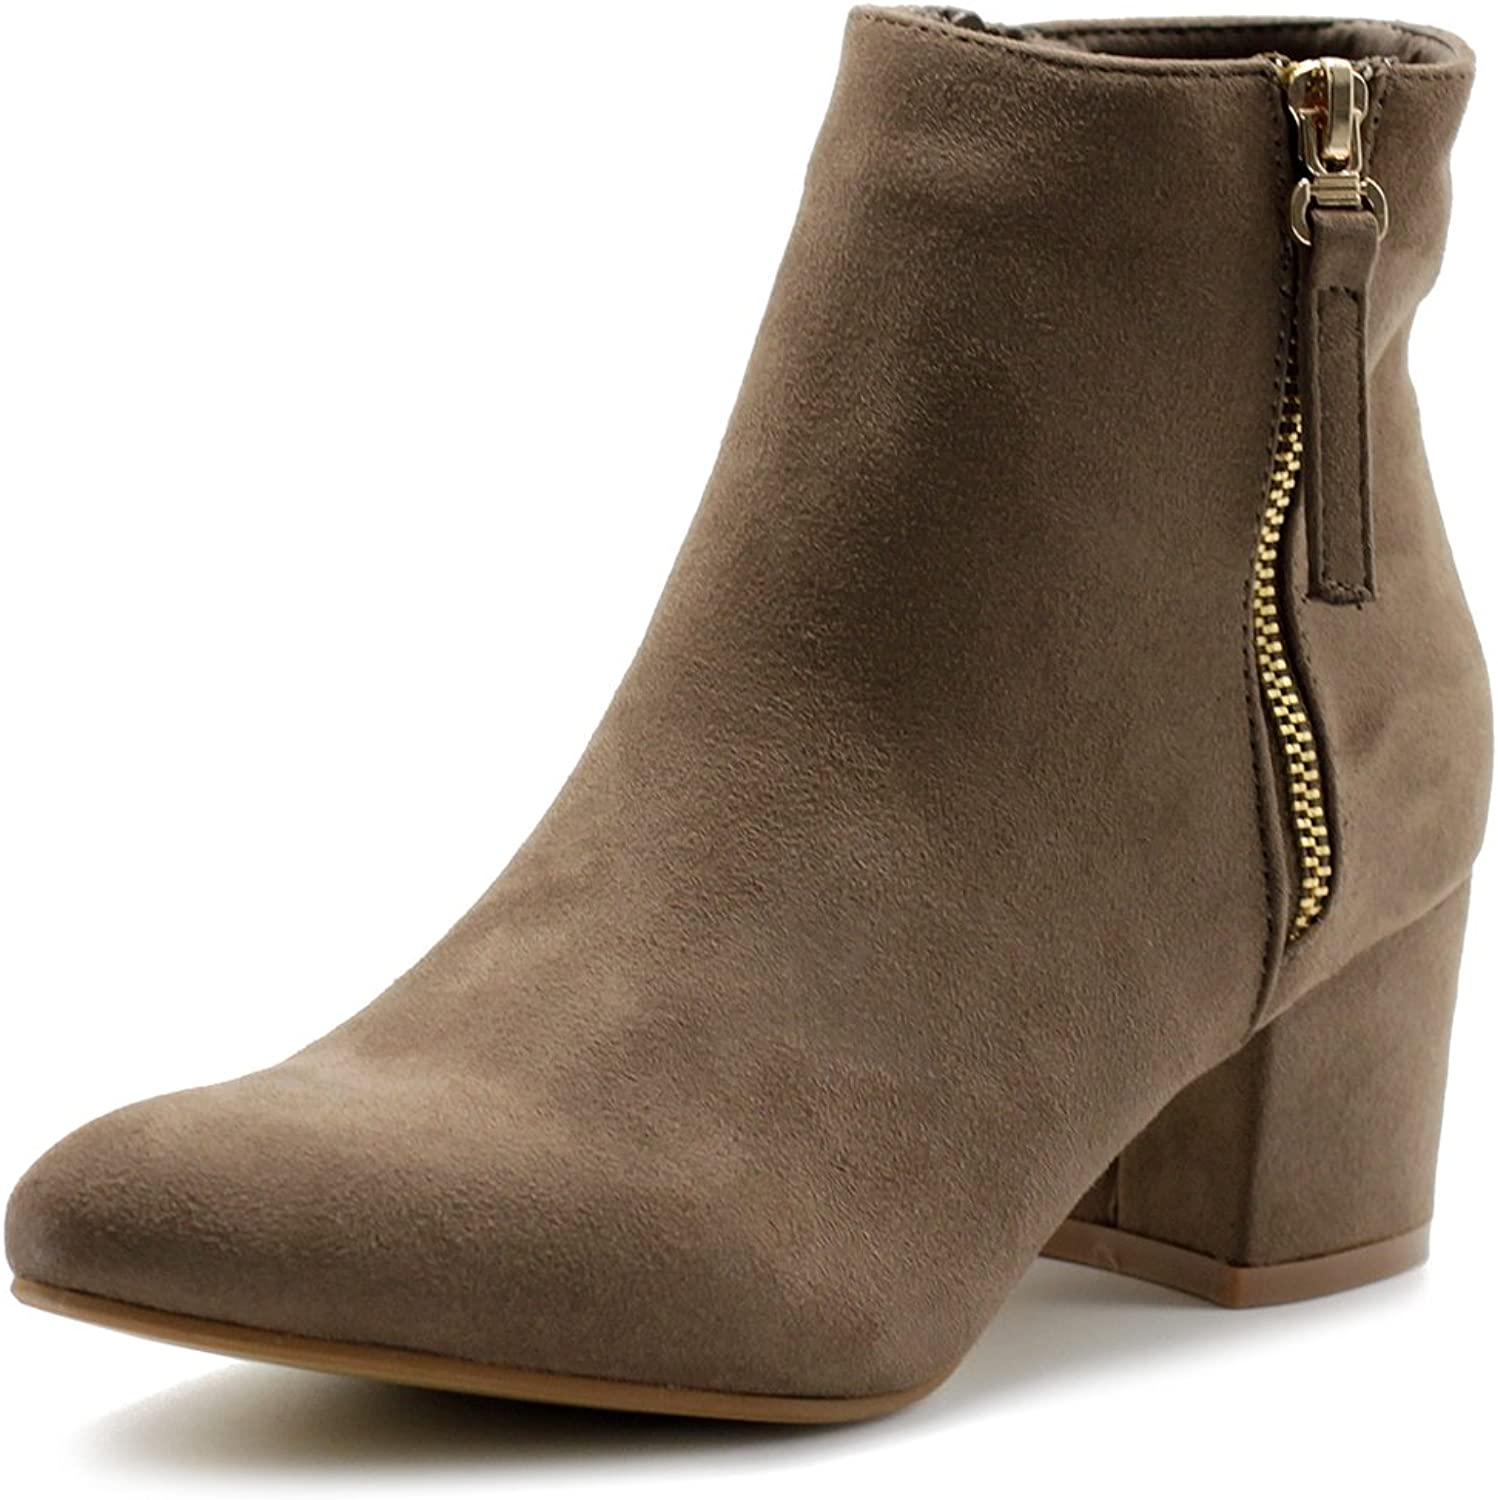 Ollio Women's shoes Faux Suede Chunky Heel Zip Up Ankle Boots TWB01016